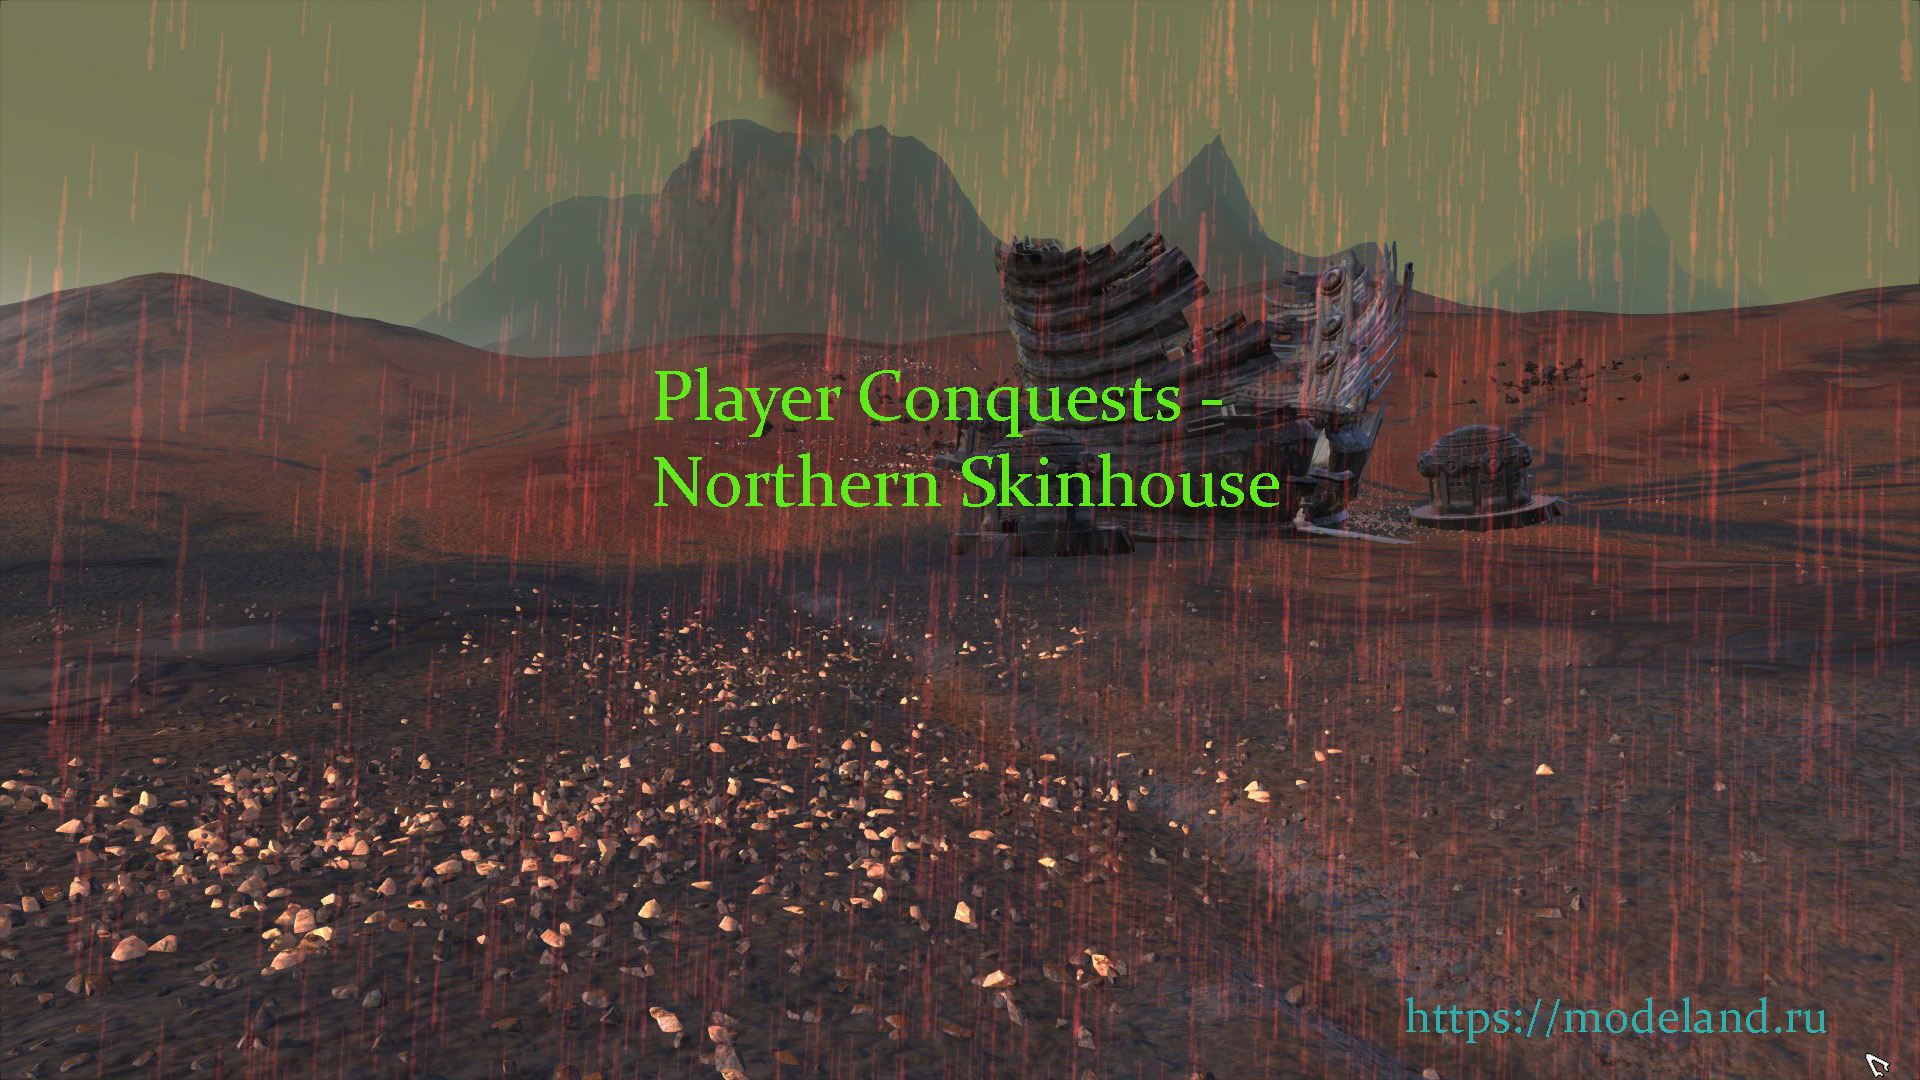 With Player Conquests - Northern Skinhouse (RU)